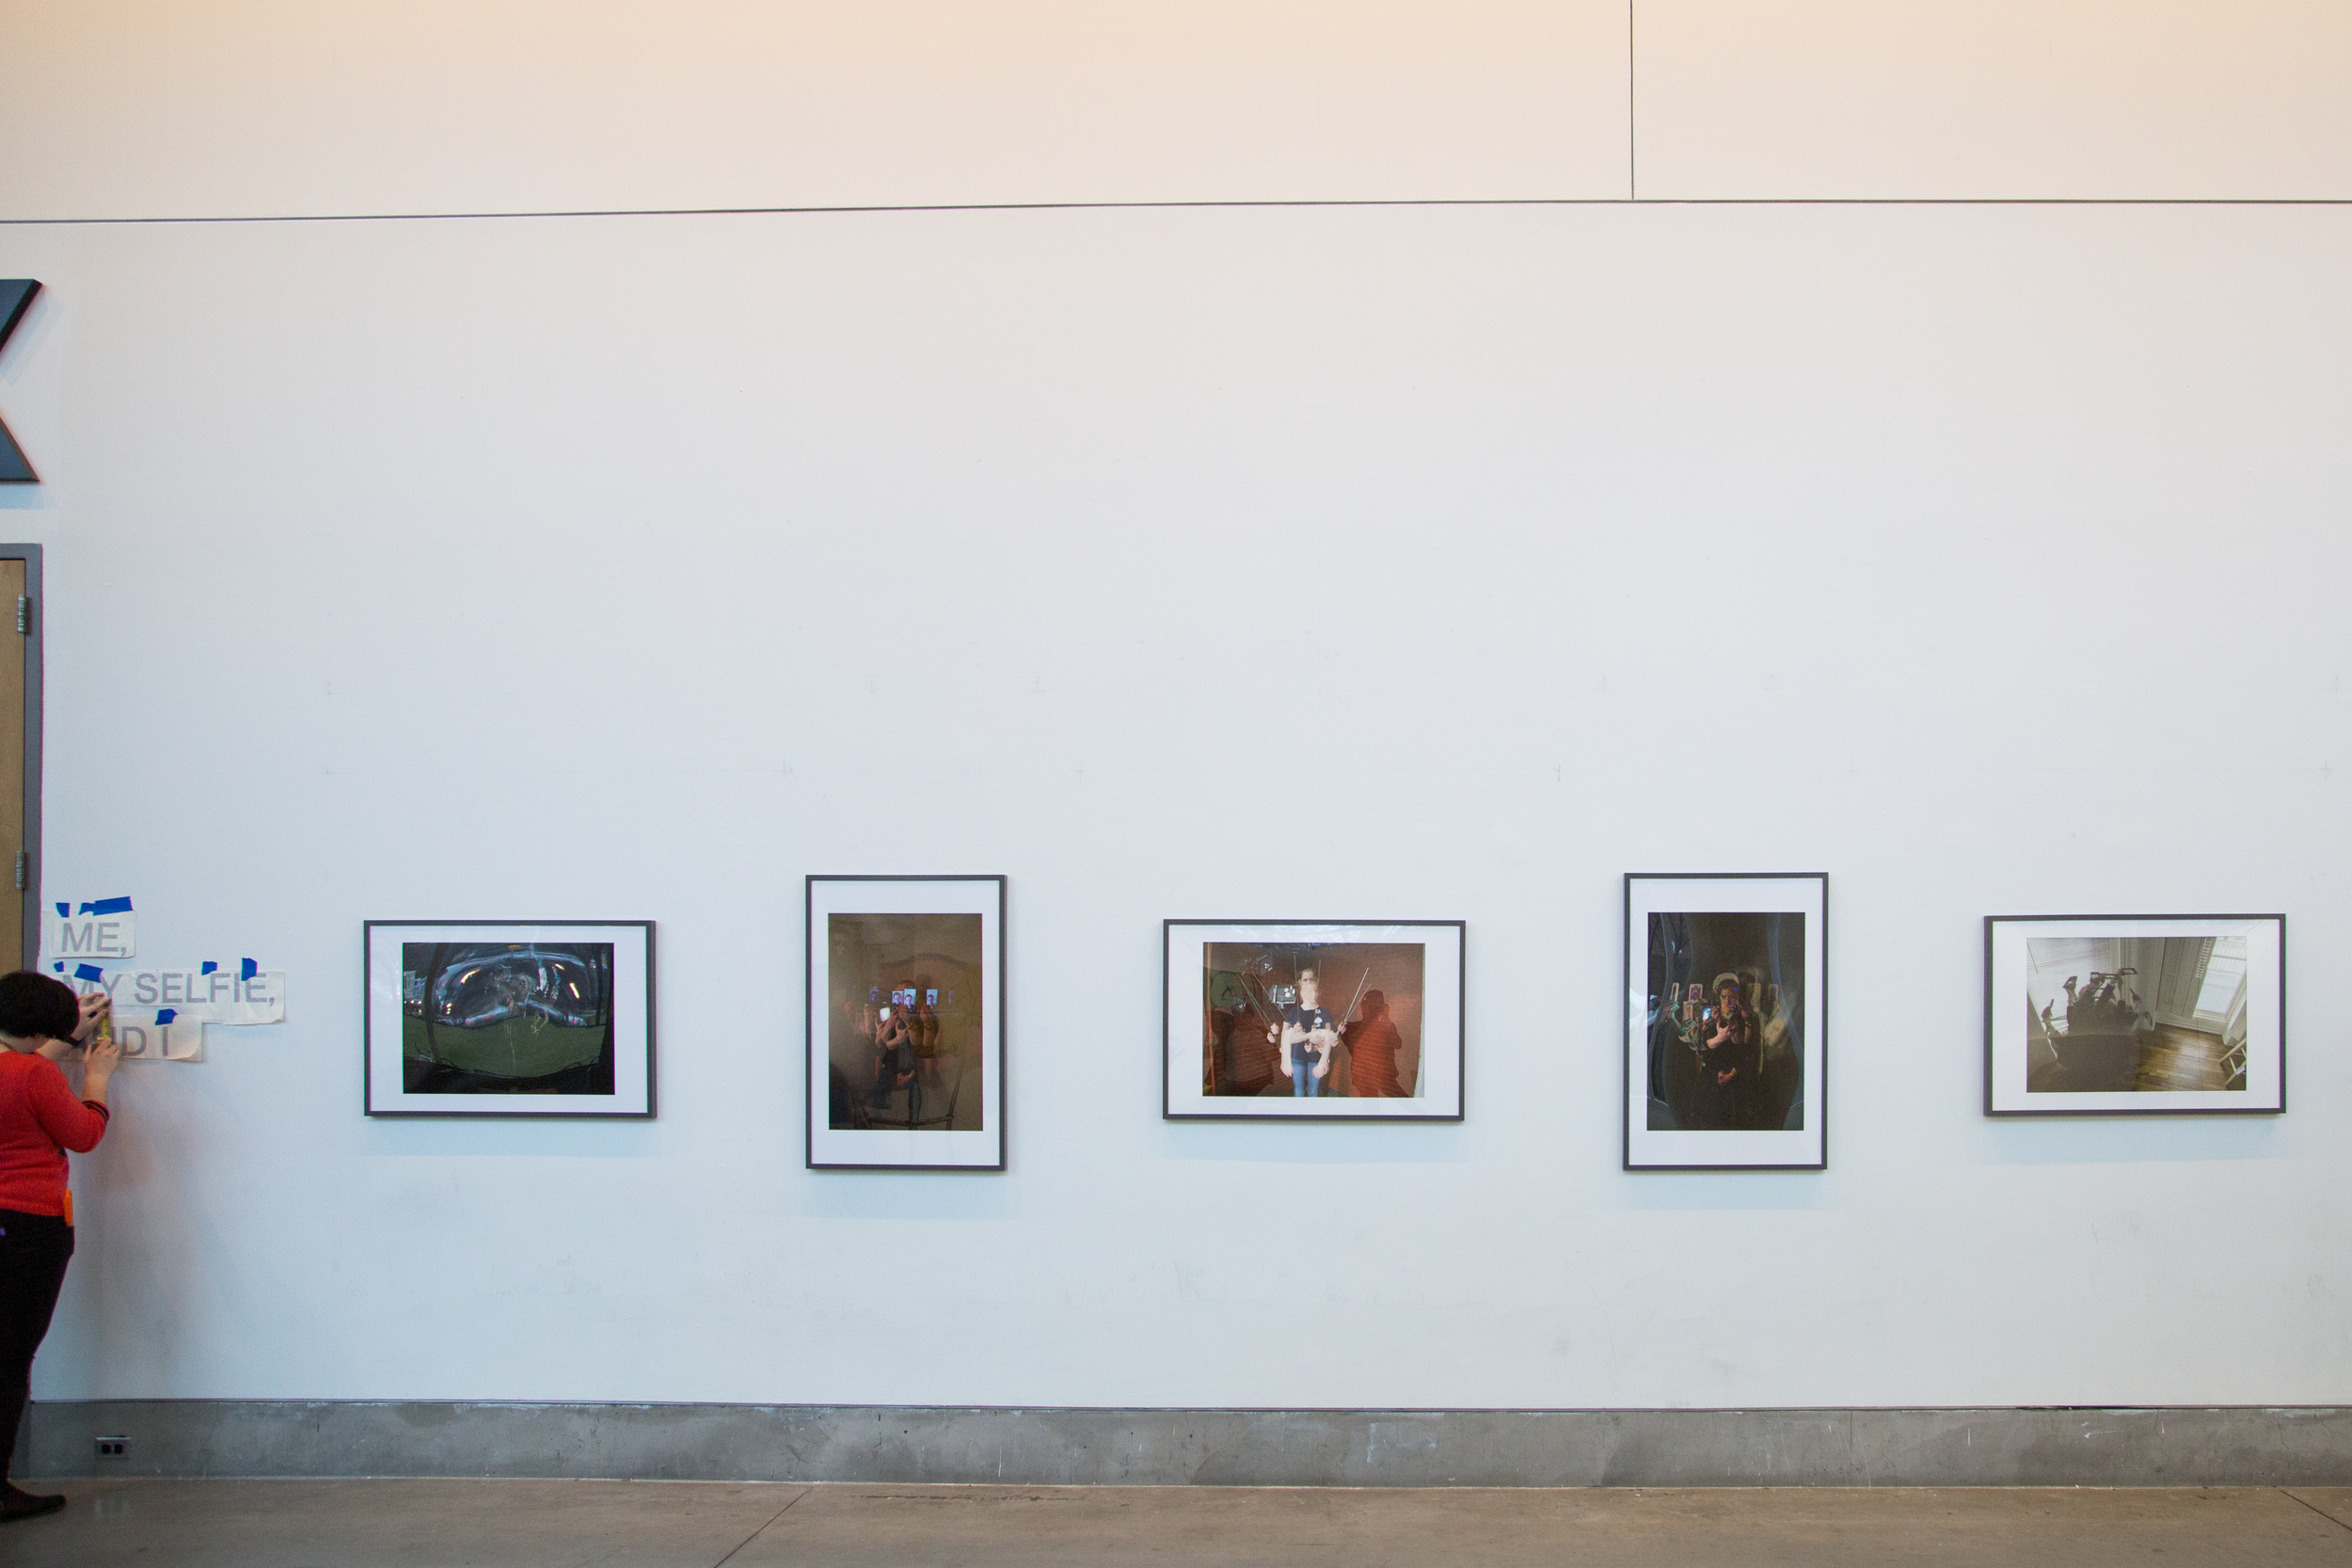 Installation of the show